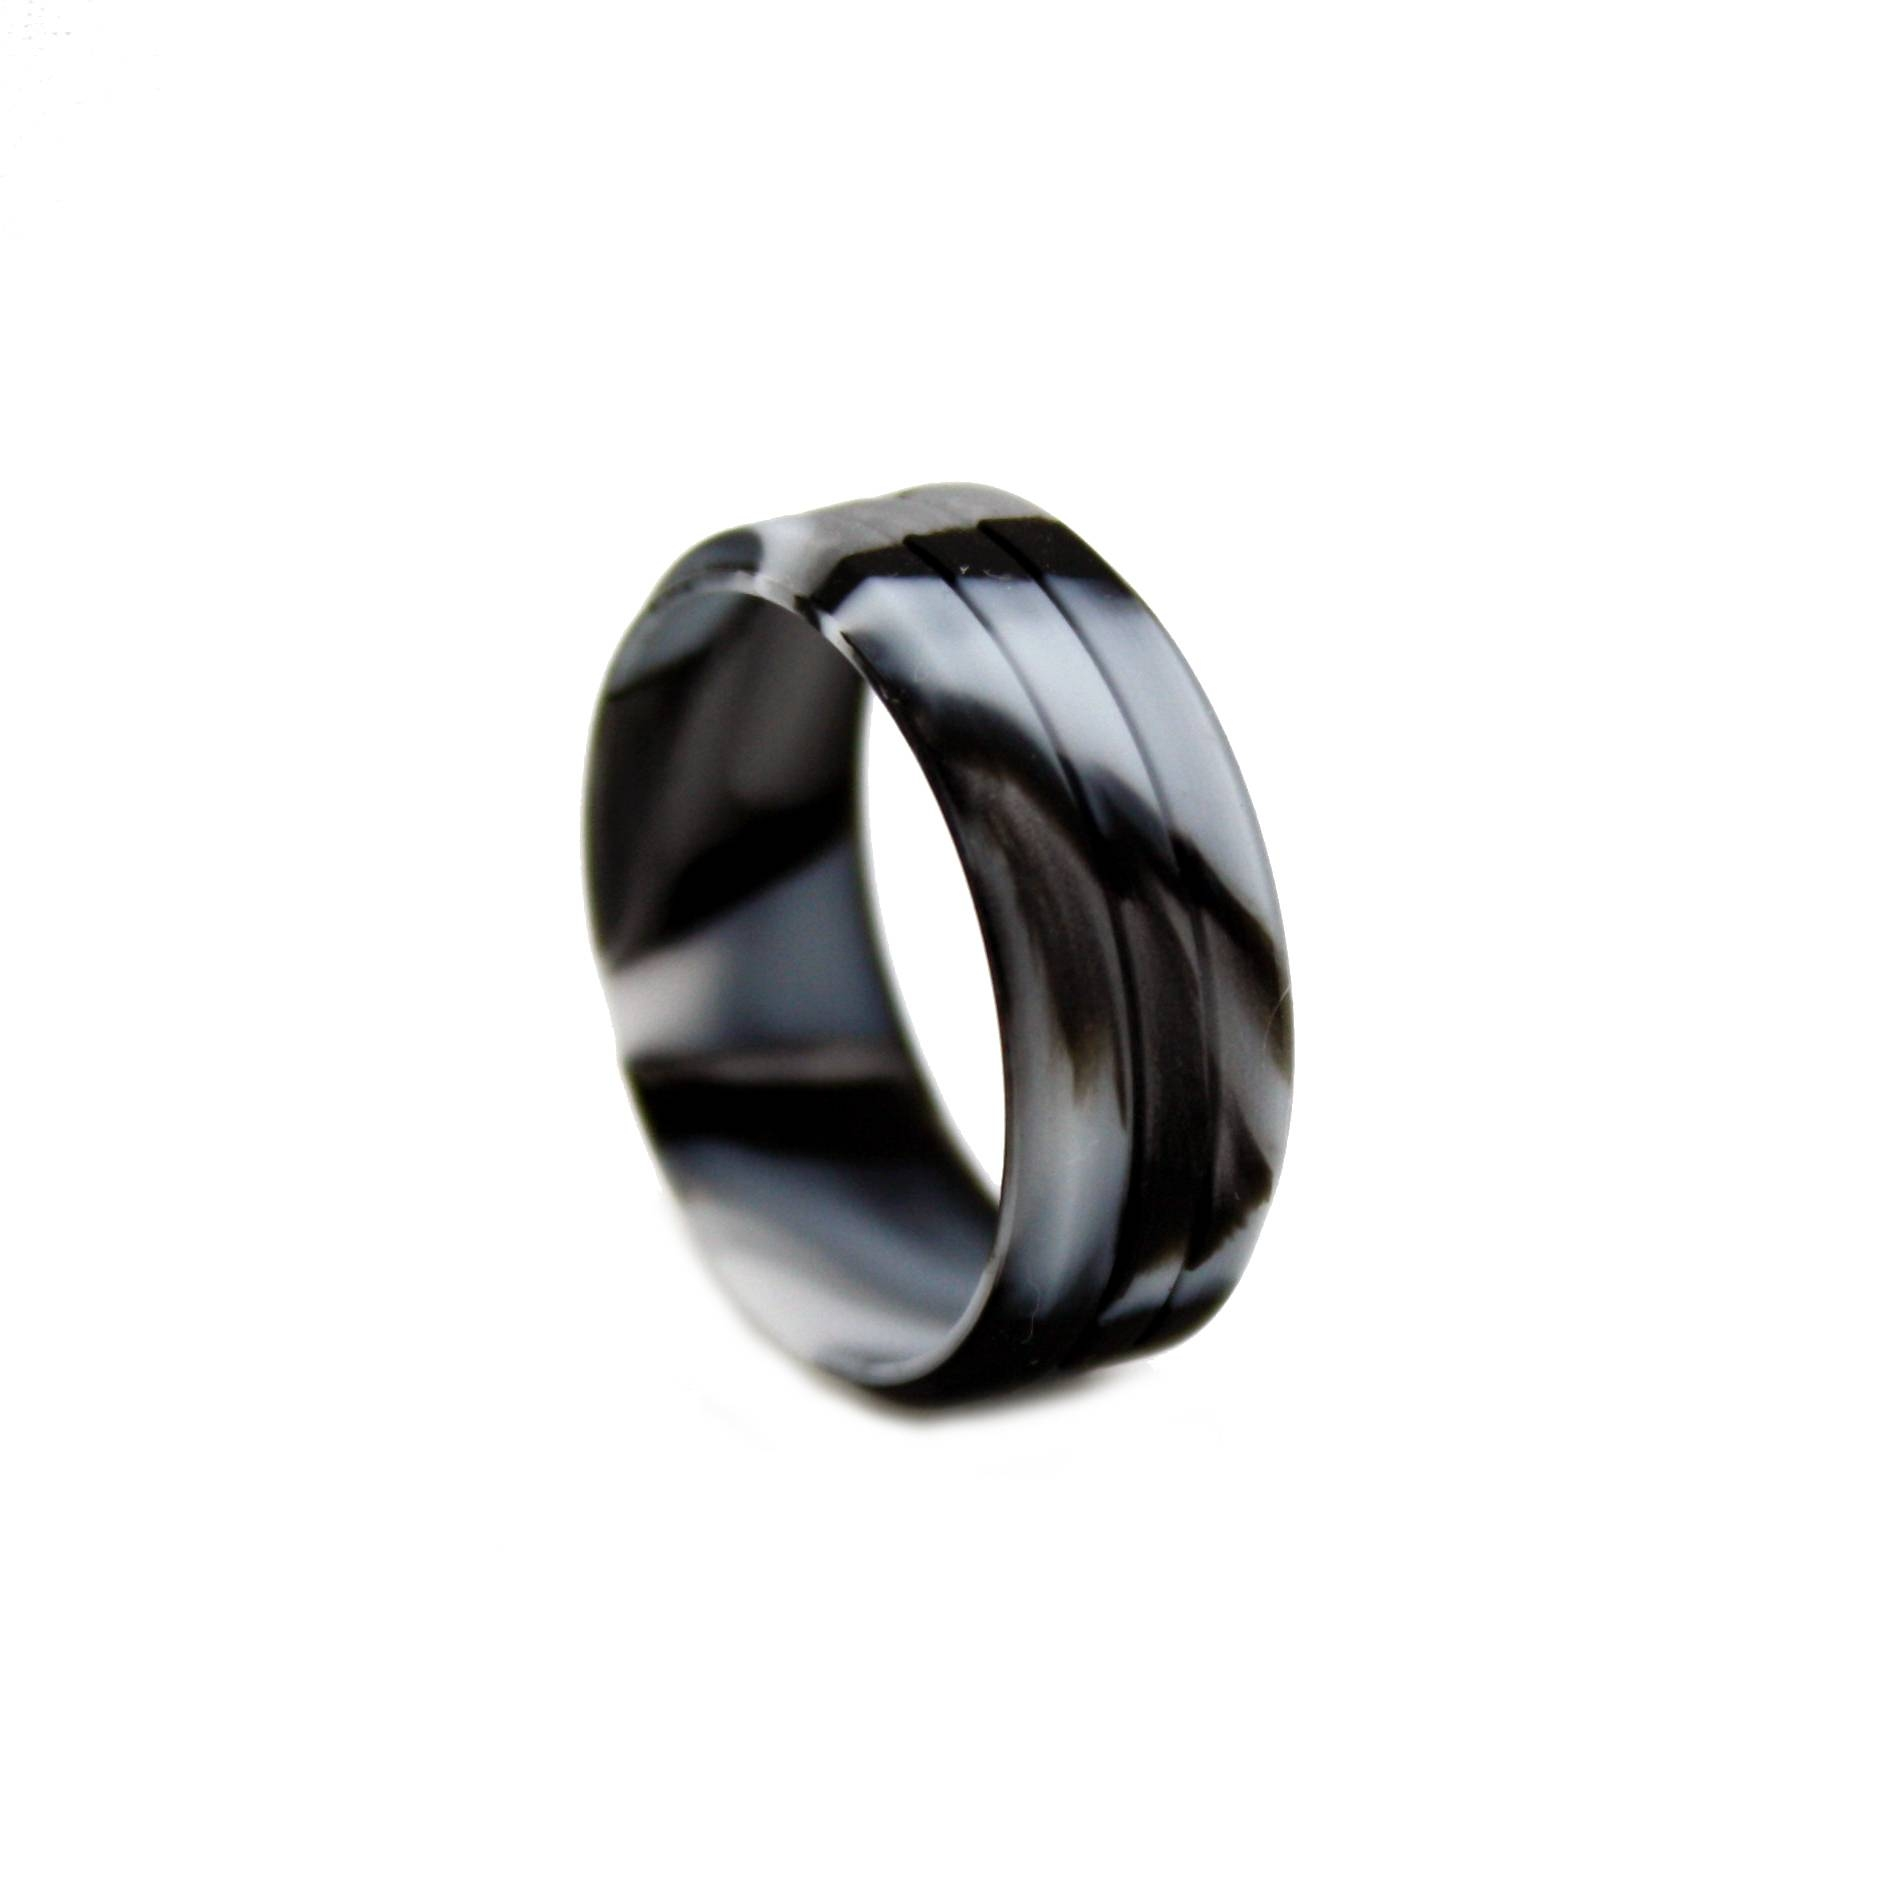 Camo Silicone Ring, Outdoor Wedding Bands, Camo Silicone Wedding Regarding Silicone Wedding Bands (View 2 of 15)